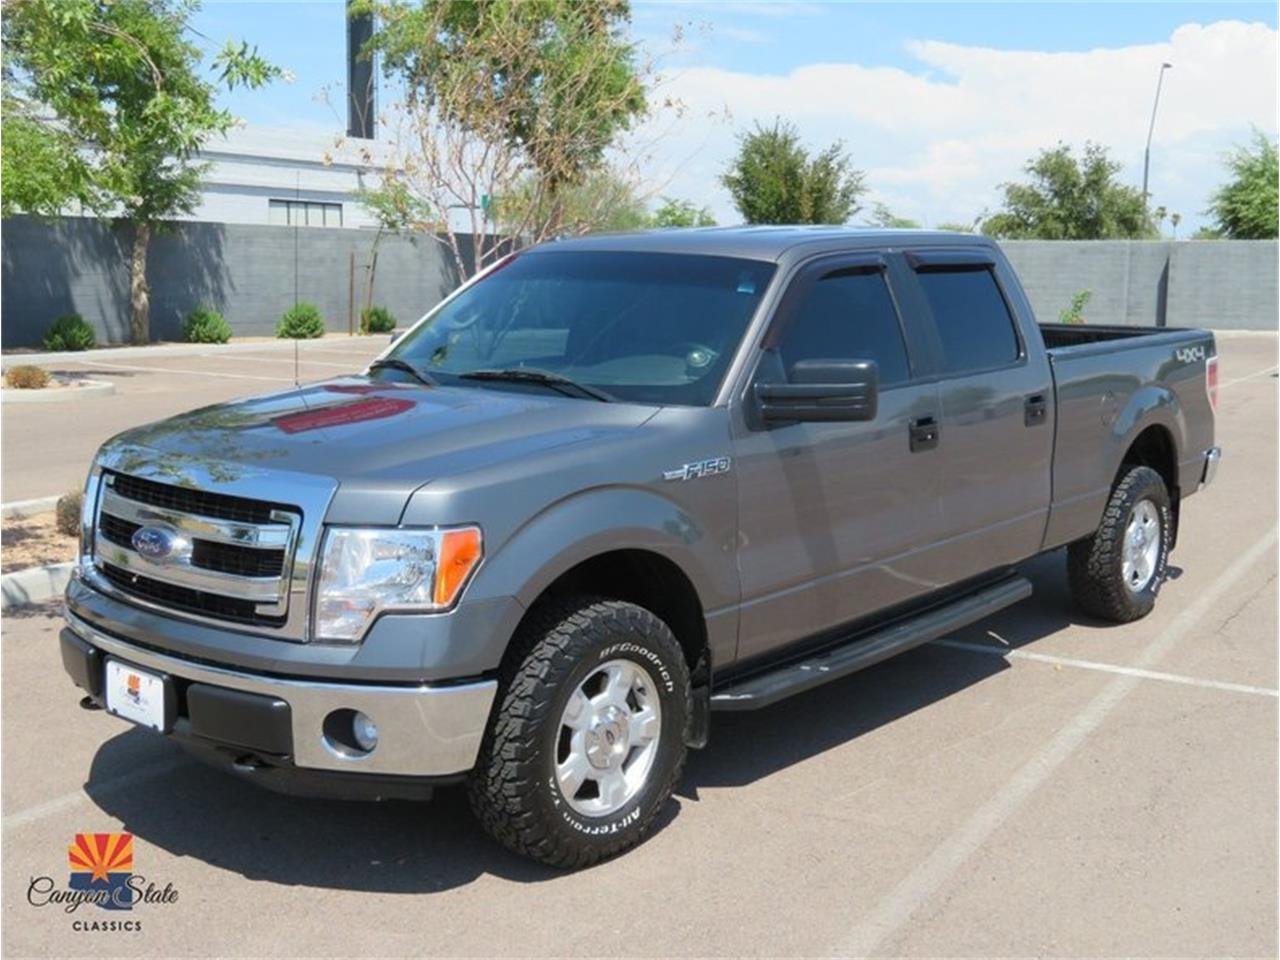 2014 Ford F150 for sale in Tempe, AZ – photo 4